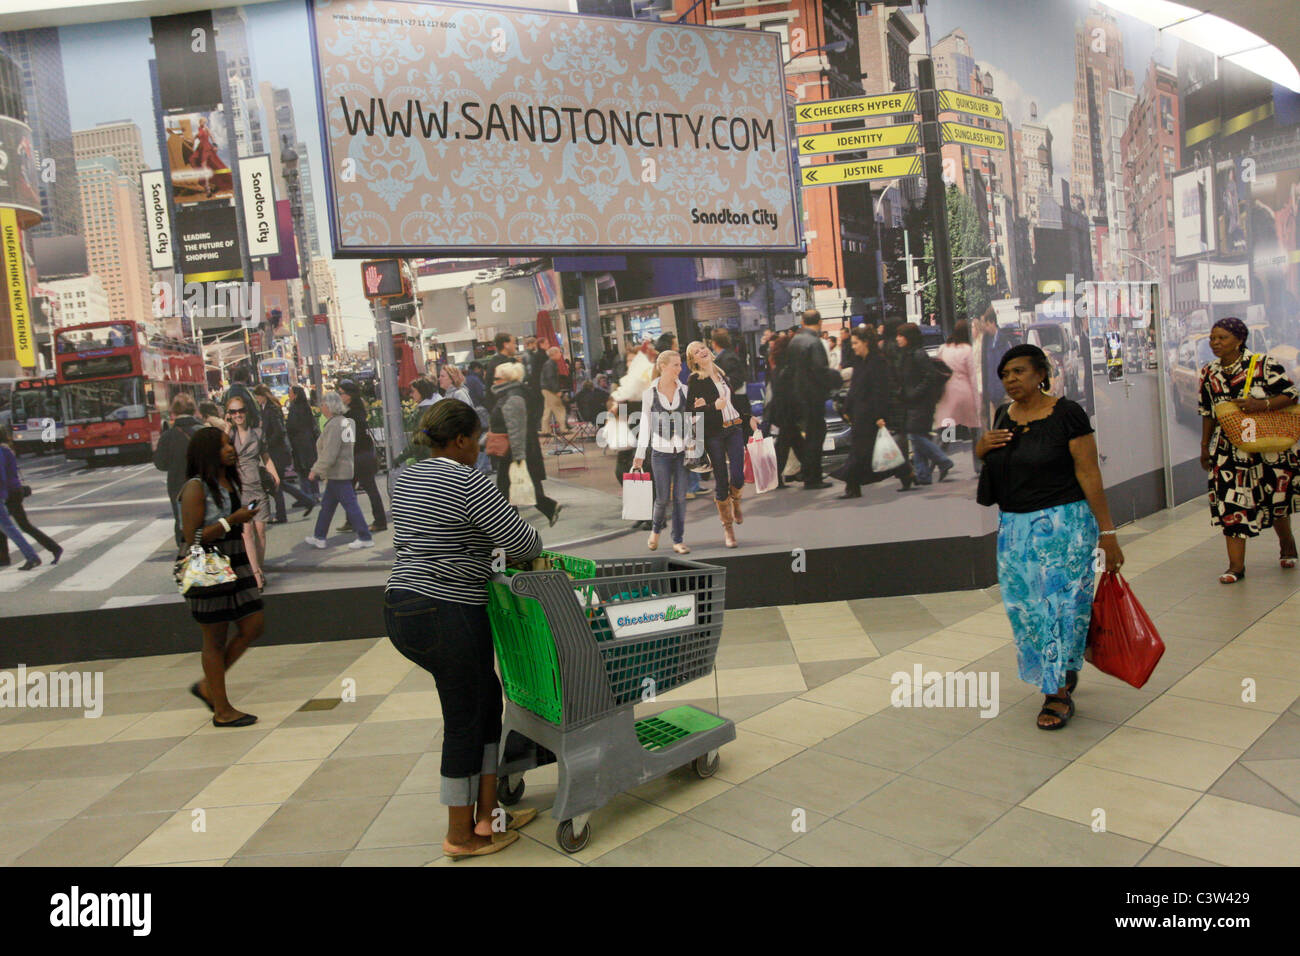 Saturday shoppers inside Sandton city shopping mall. Johannesburg. South Africa. - Stock Image